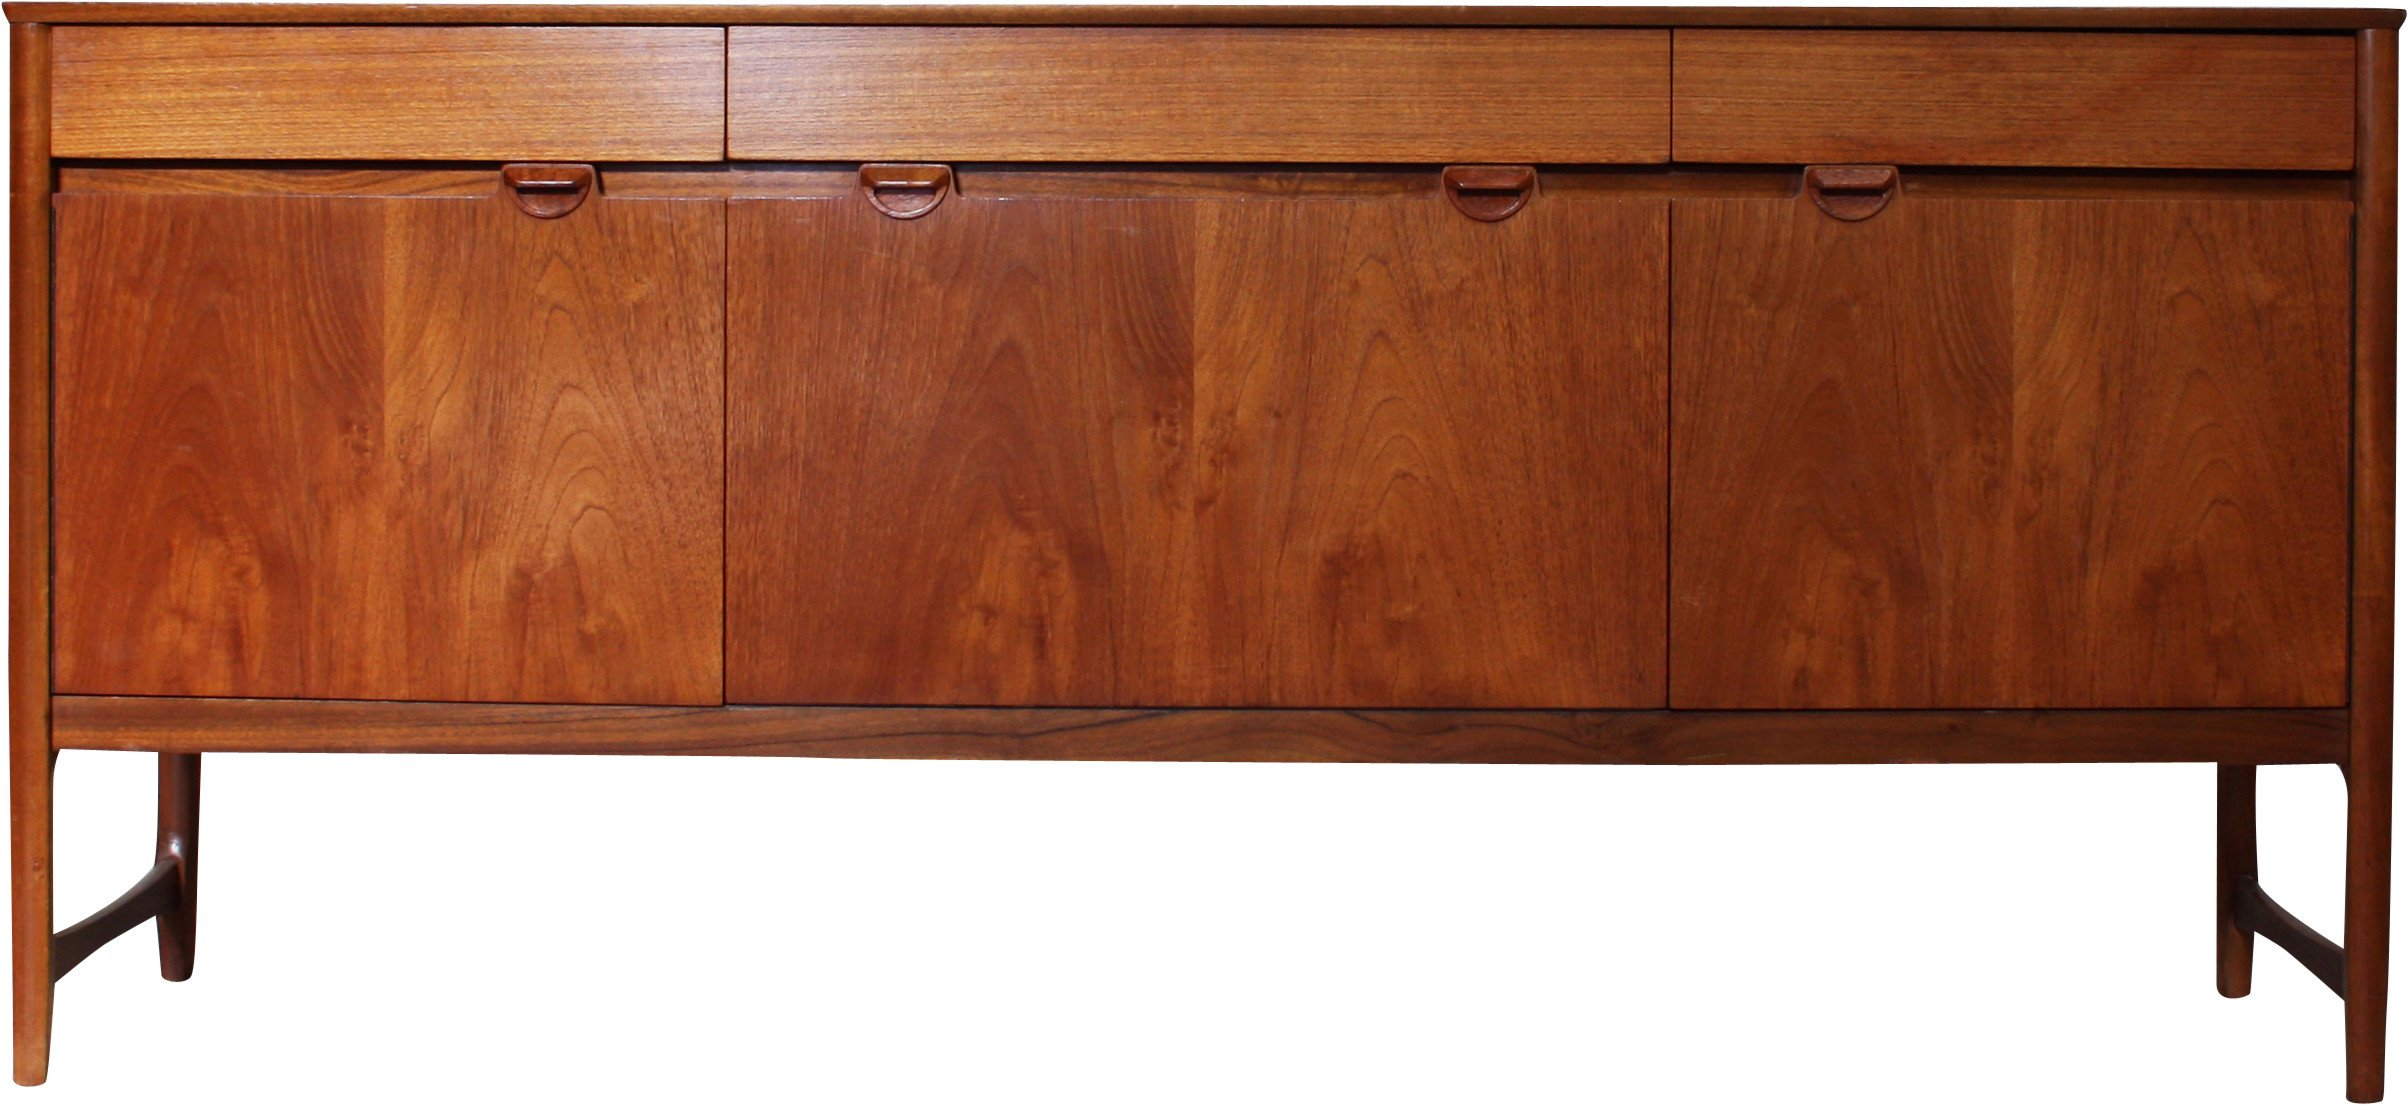 Sideboard, Nathan, United Kingdom, 1960s